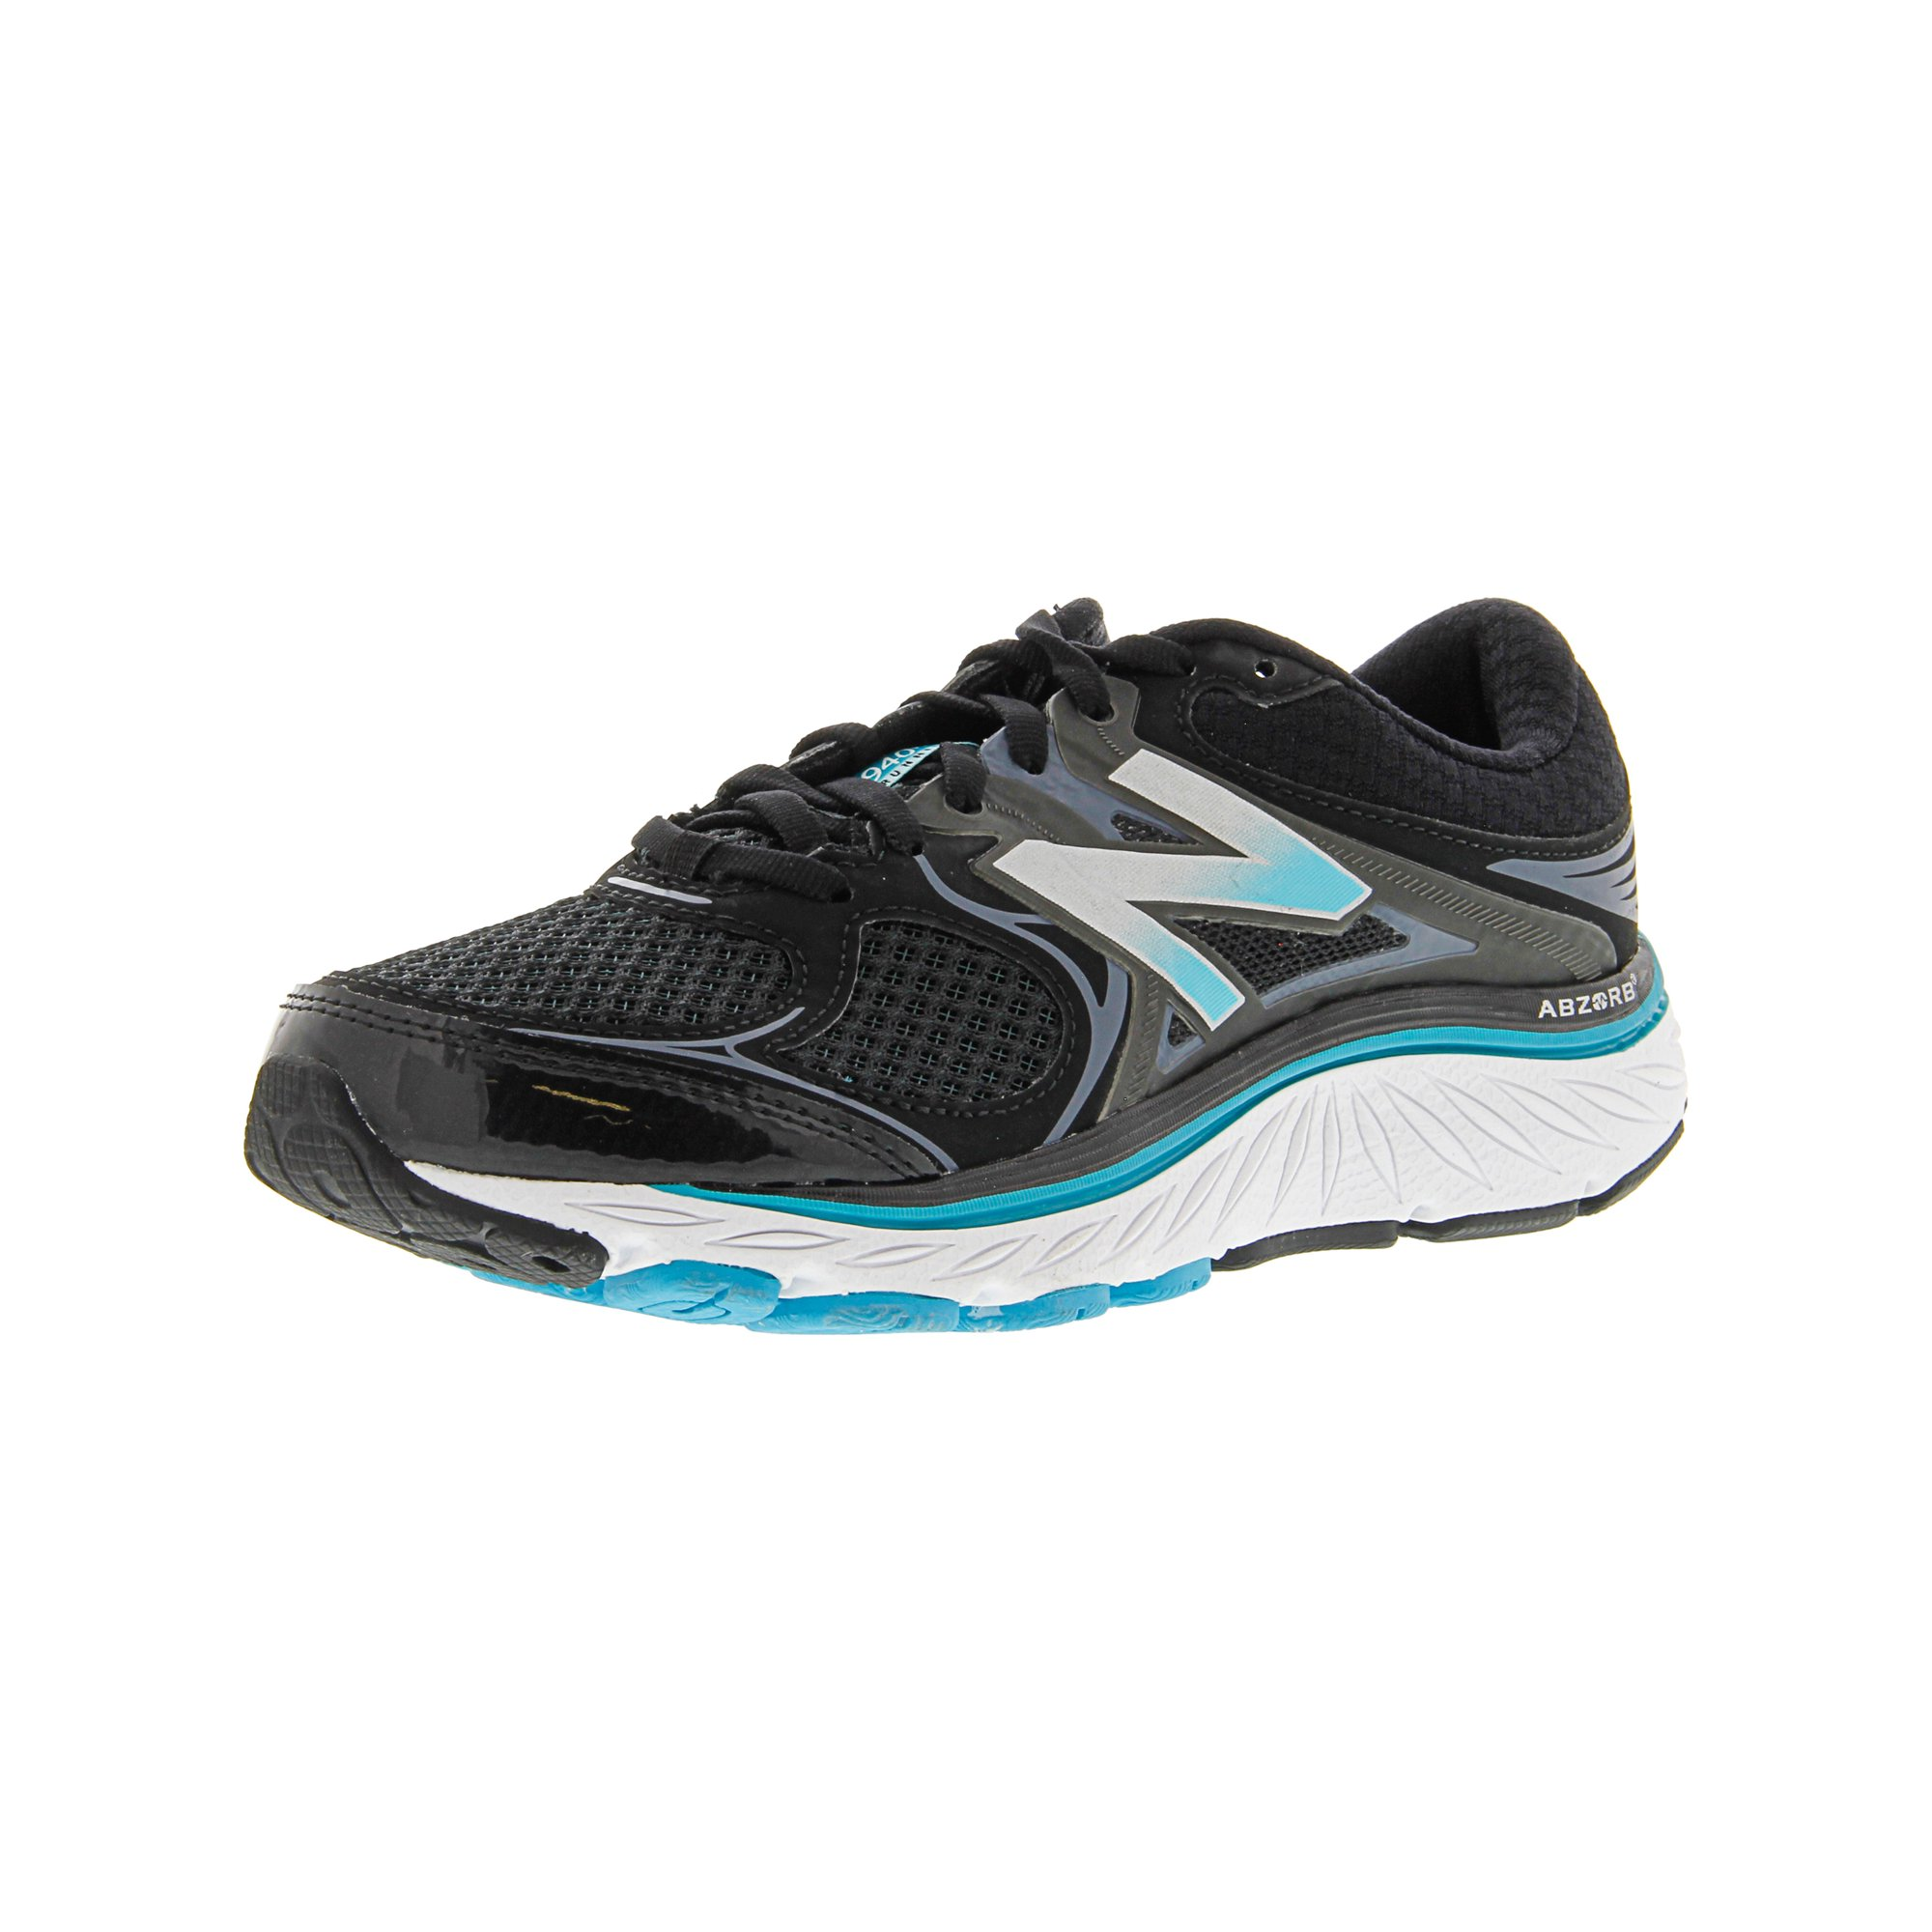 regard détaillé 7e412 2558c New Balance Women's 940 Bk3 Ankle-High Running Shoe - 6WW